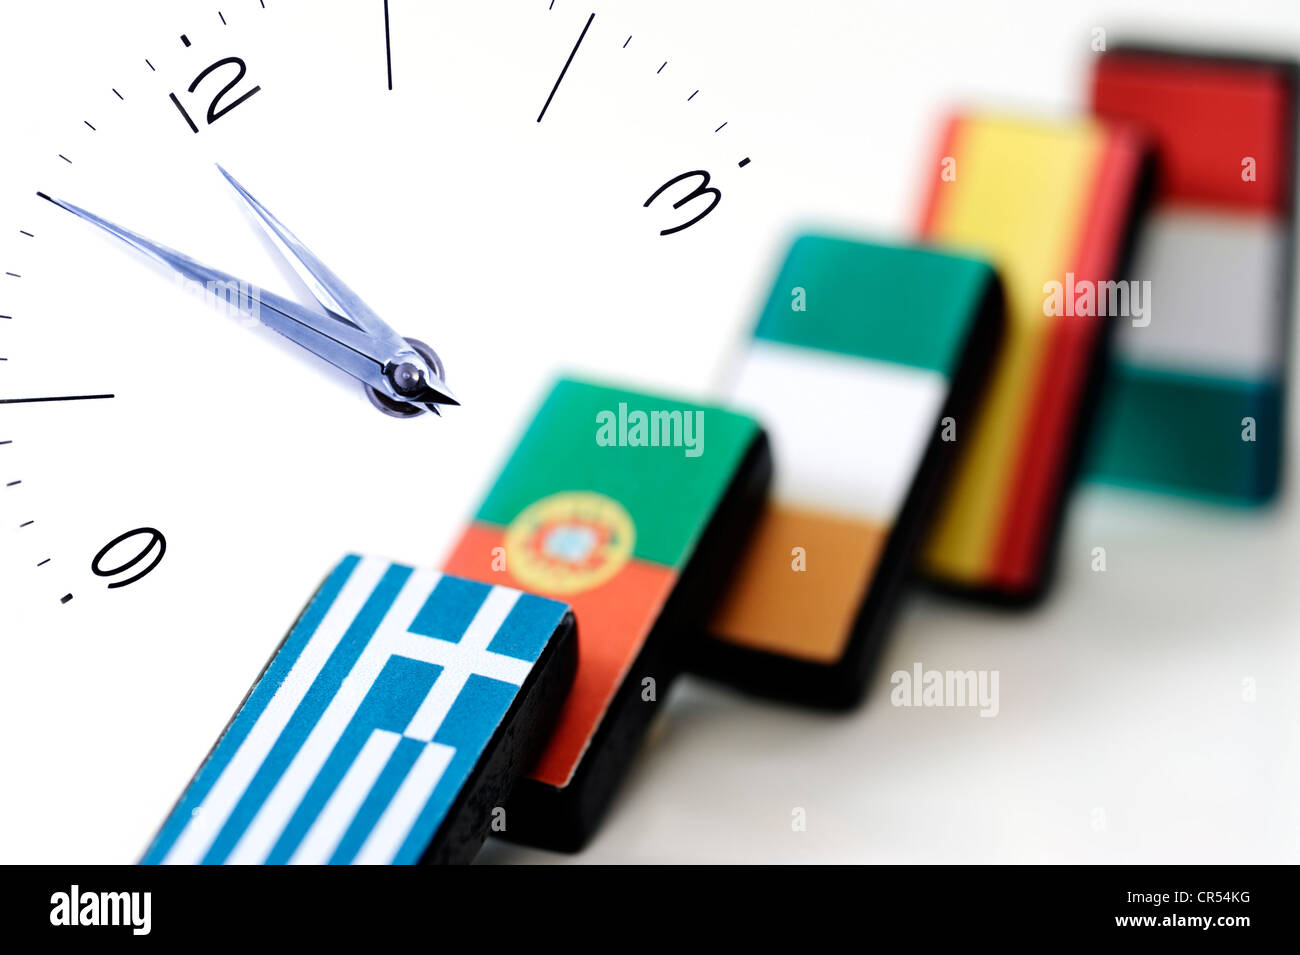 Domino effect in EU countries, debt crisis, 11:55, high noon, symbolic image - Stock Image